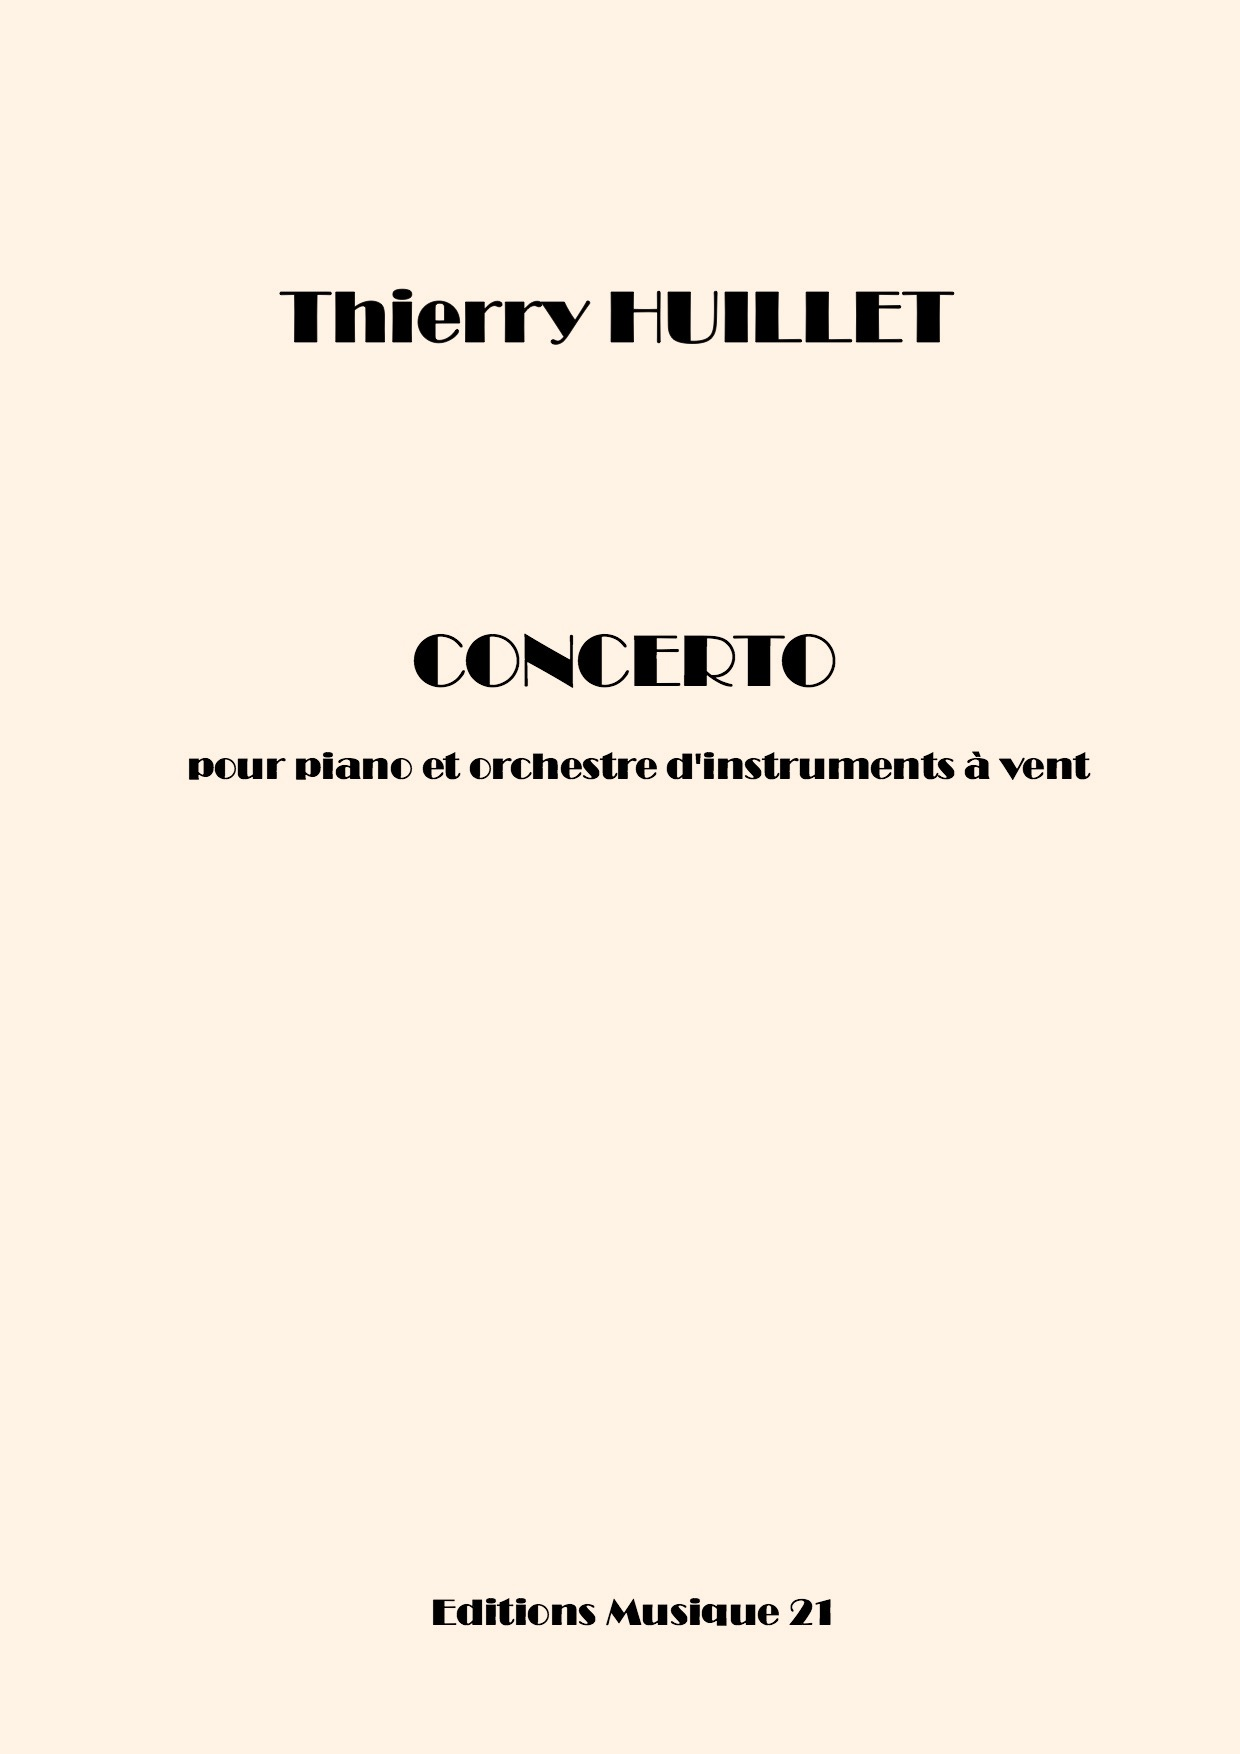 Thierry HUILLET – Concerto For Piano And Wind Orchestra (orchestral Parts)